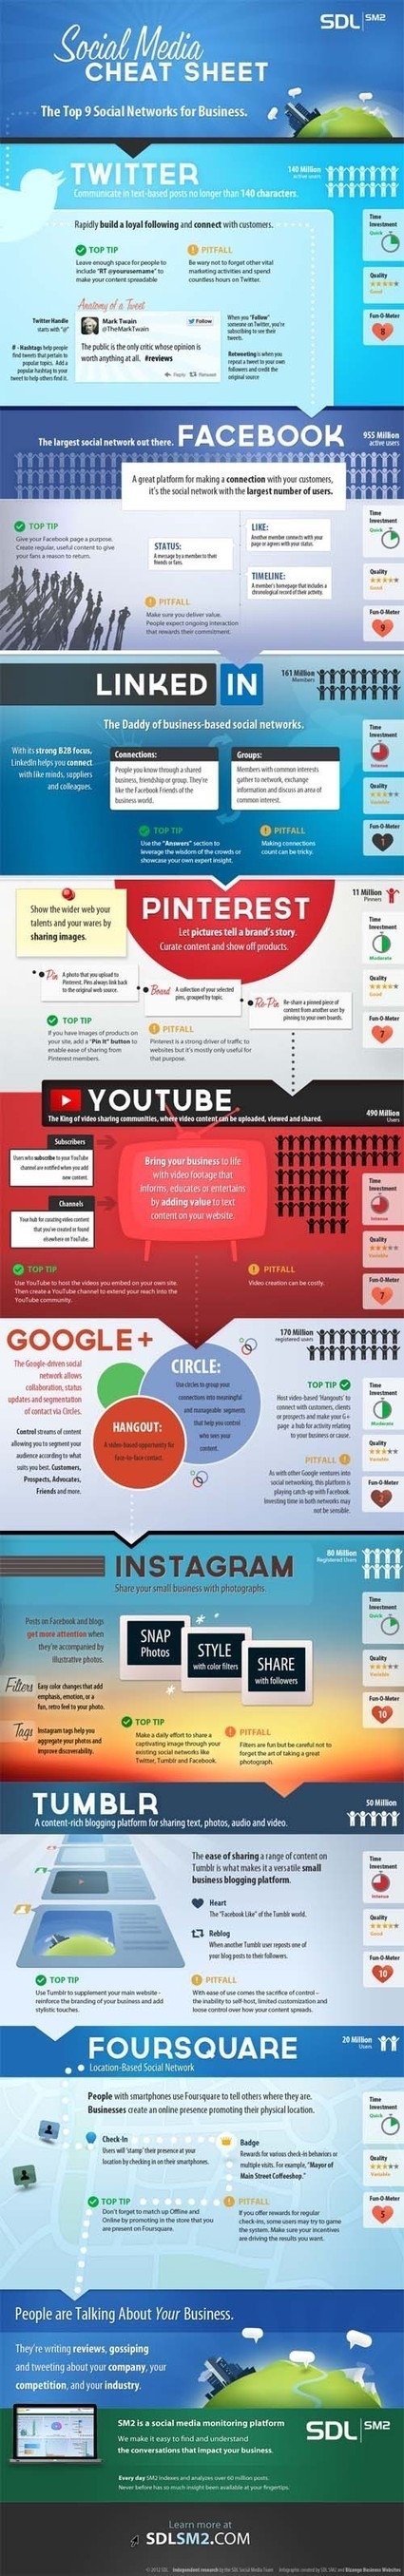 Social Media for Business Explained [Infographic] | Social Media & Local Businesses | Scoop.it